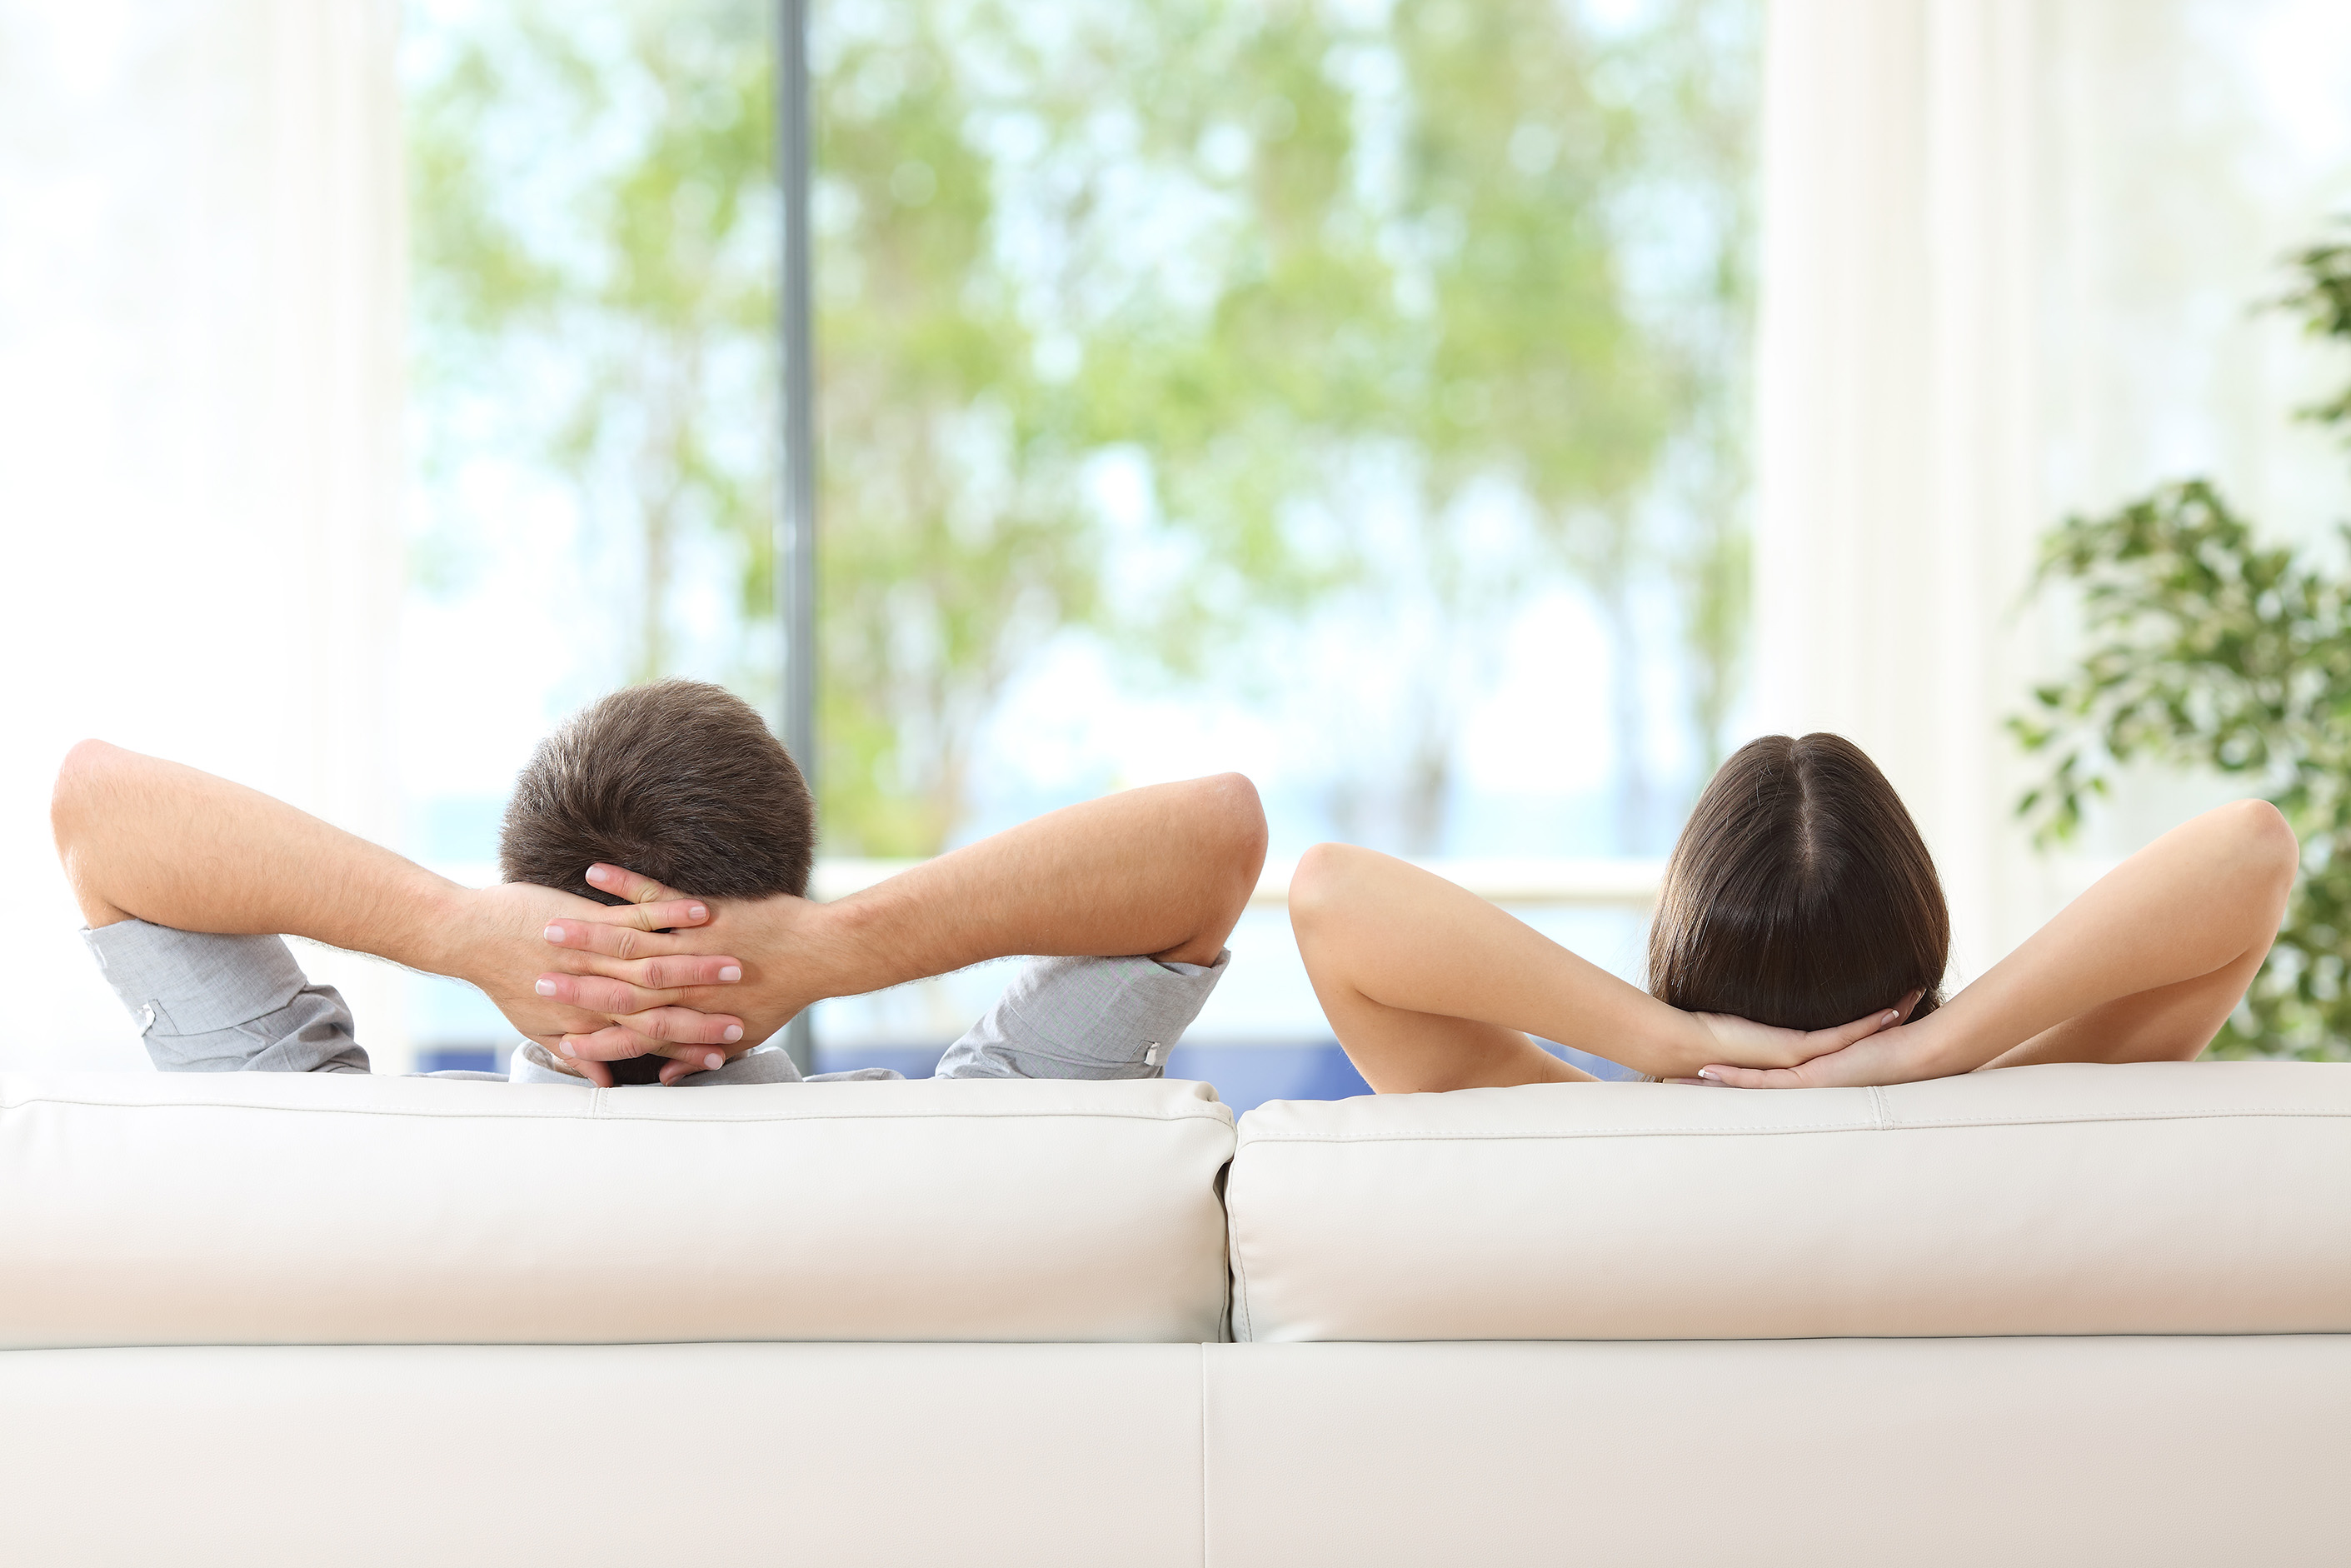 A photo of a straight couple relaxing on a beige couch in their home, looking out an overexposed green yard